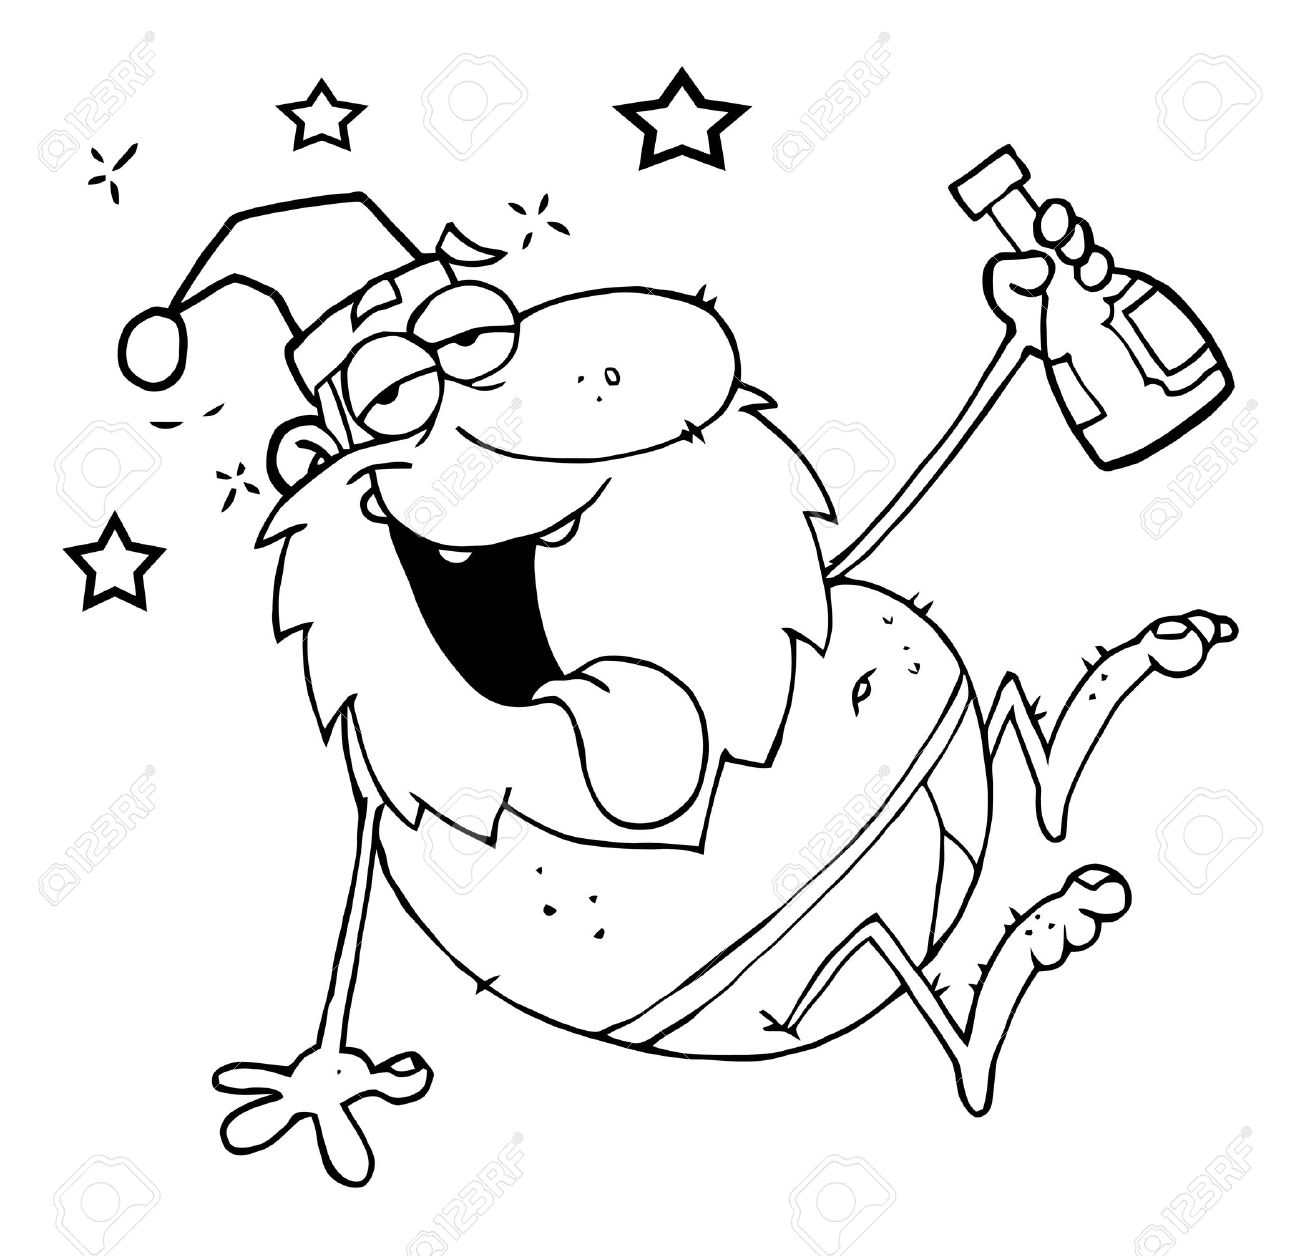 Outline Drunk Santa Clause Royalty Free Cliparts, Vectors, And.